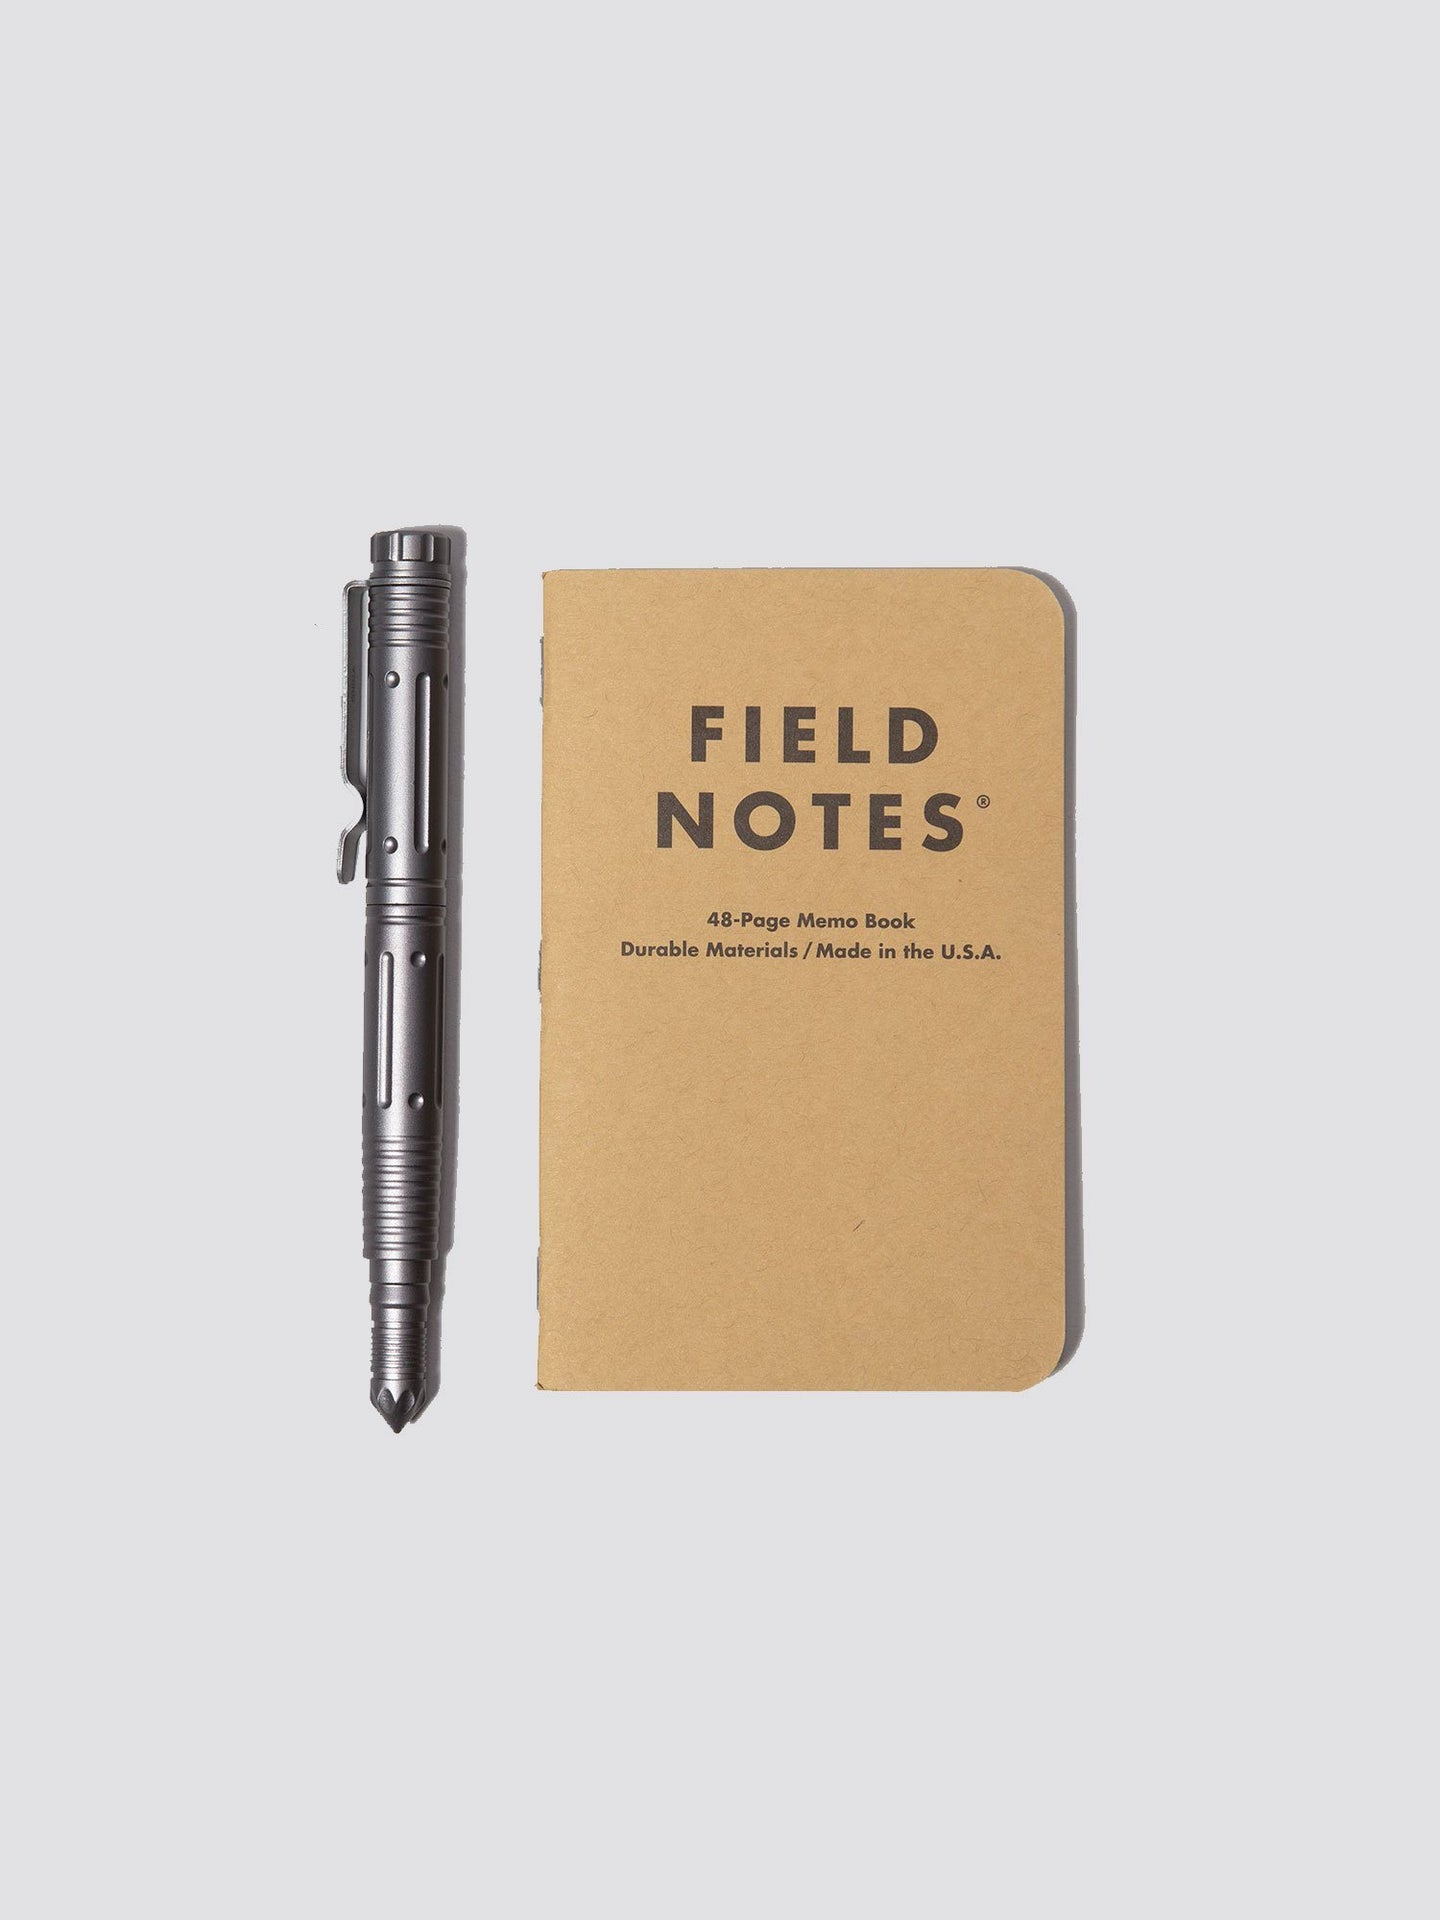 FIELD NOTES AND PEN ACCESSORY Alpha Industries NO COLOR O/S